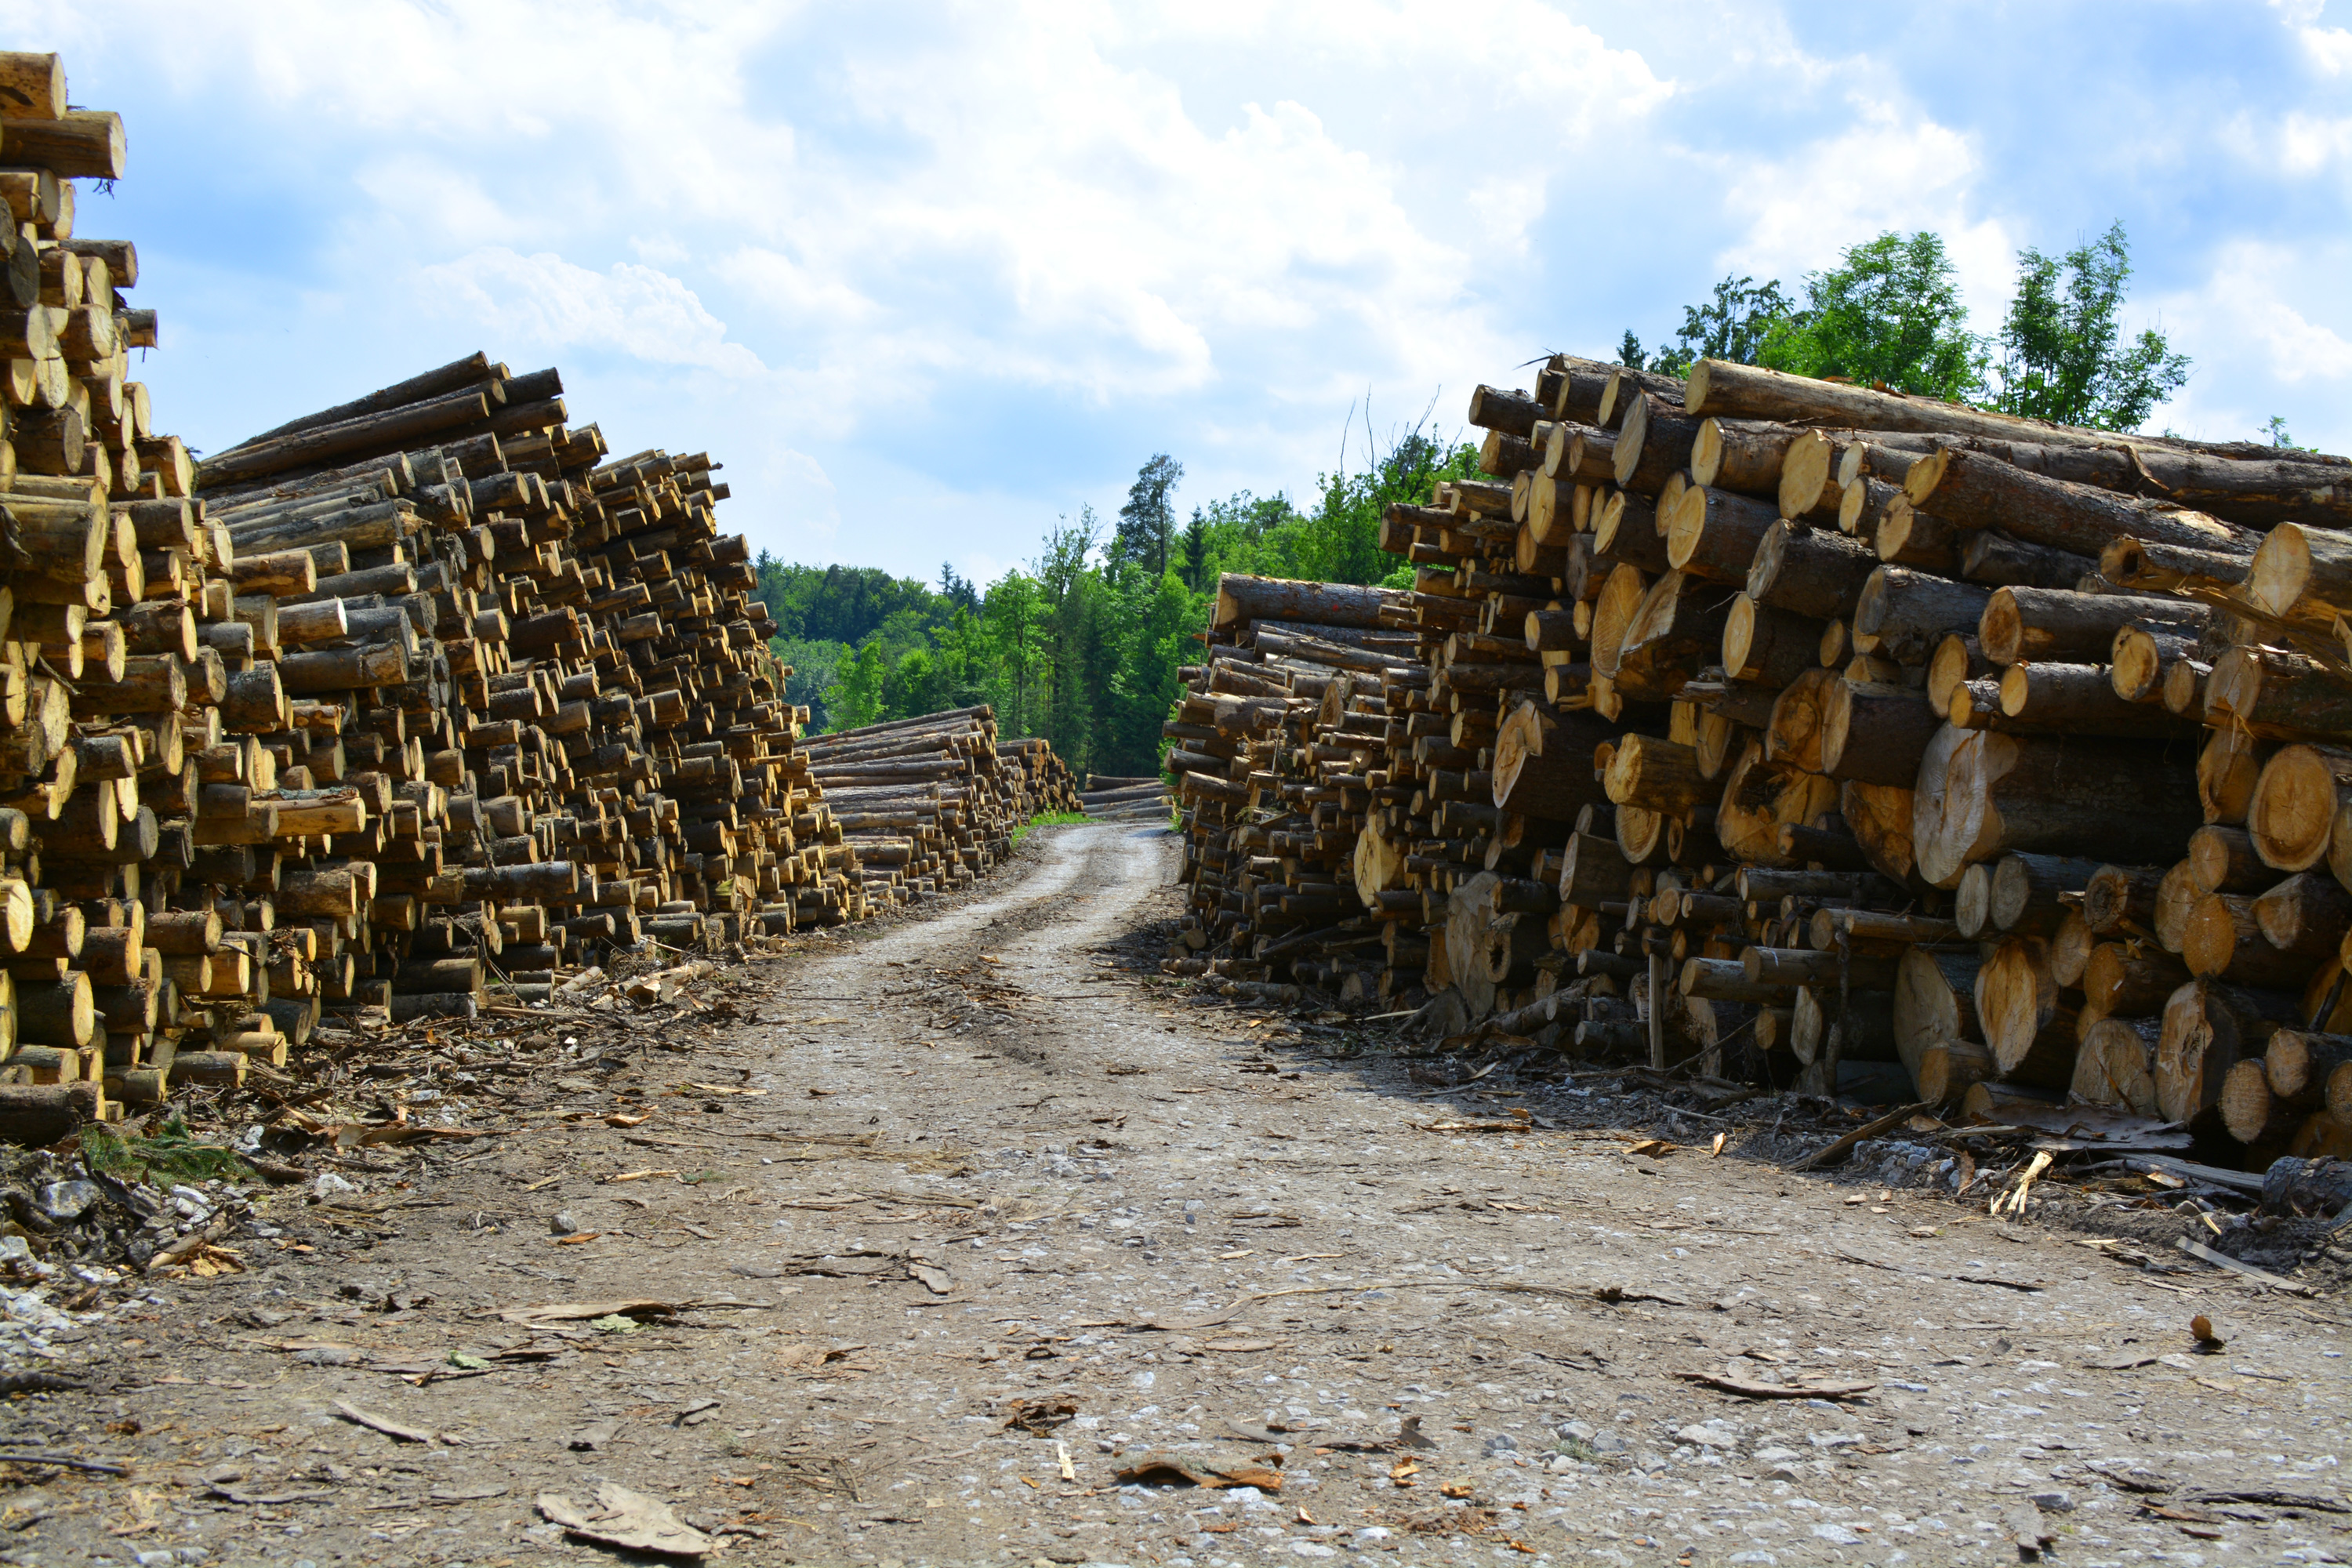 Lots of wood logs, Stacked, Raw, Renewable, Resource, HQ Photo